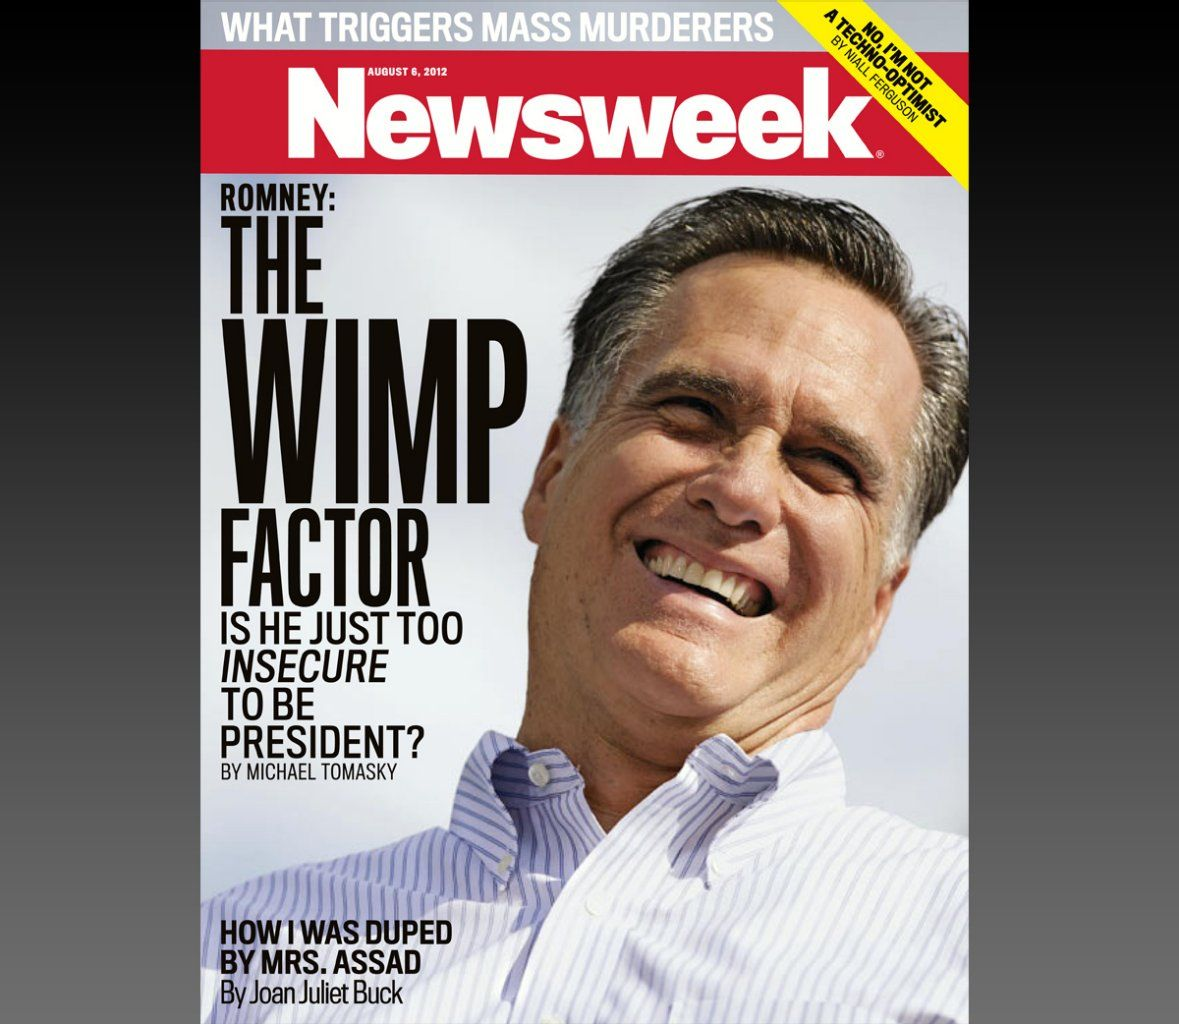 Romney: The Wimp Factor